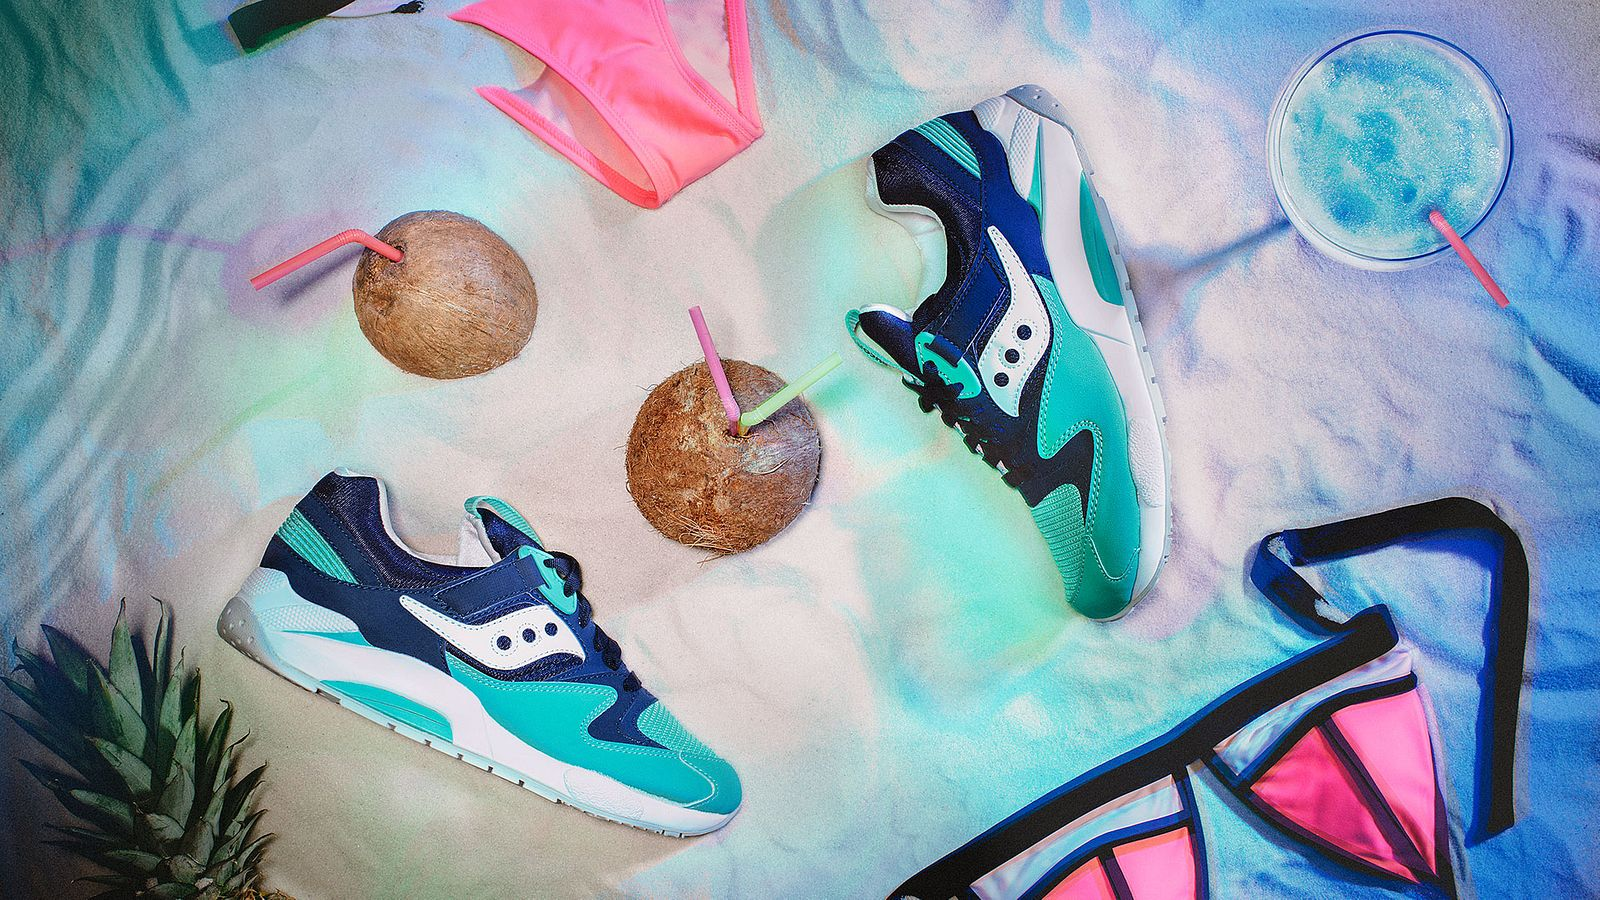 Spring Break shoe for Saucony Originals, styled by Someoddpilot